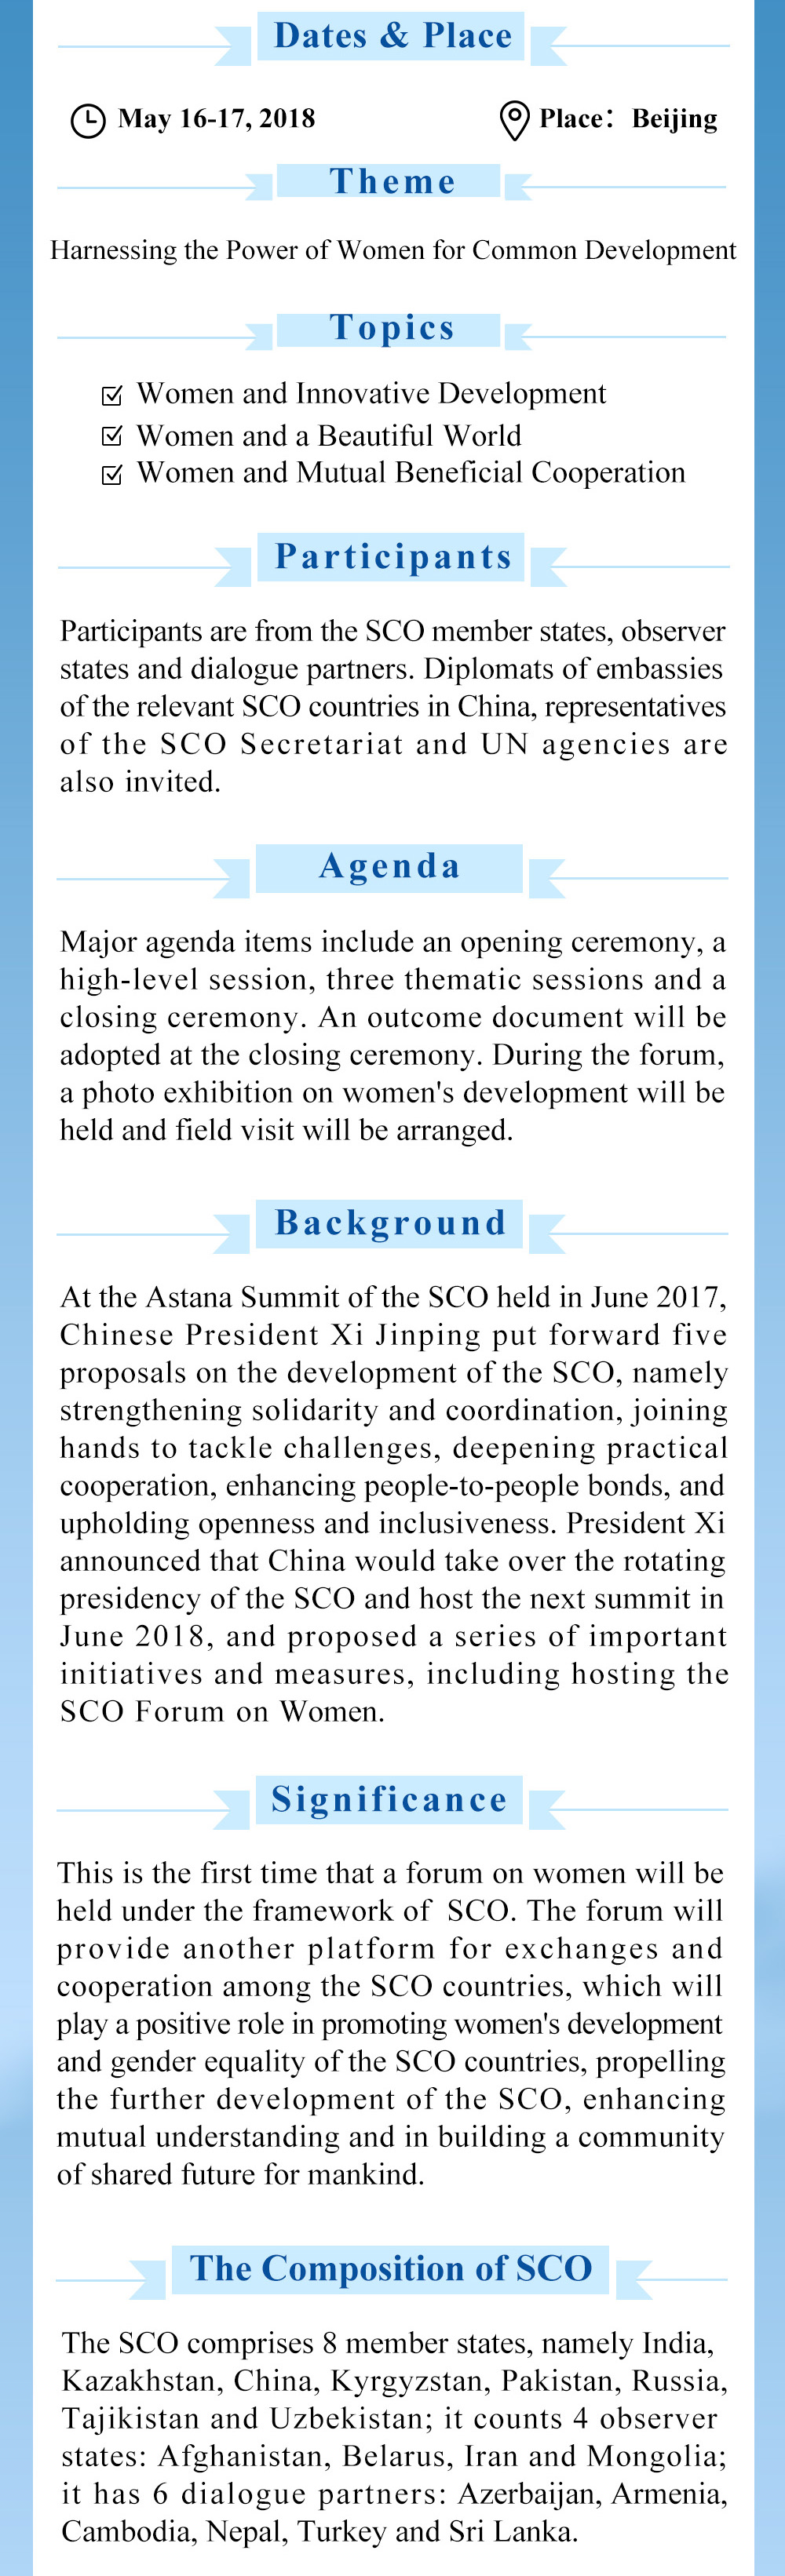 The First SCO Forum on Women to Be Held in Beijing